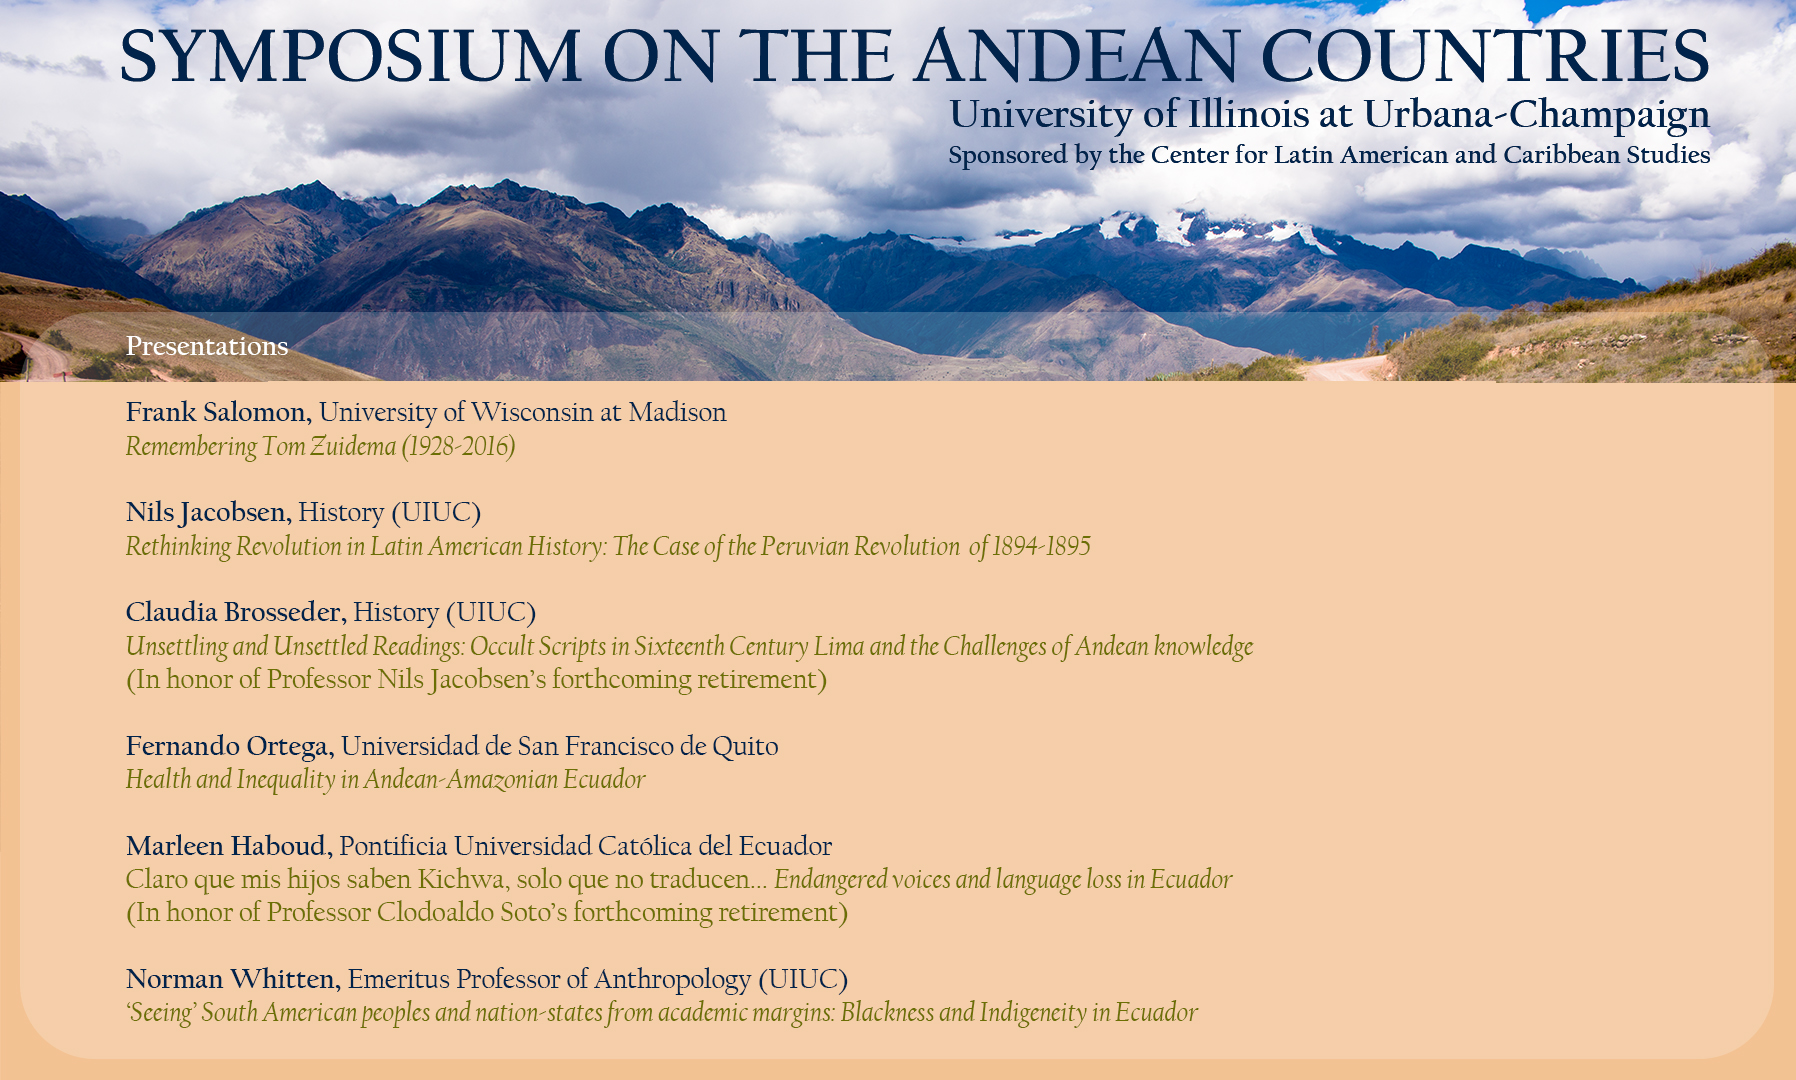 Health and Inequality in Andean-Amazonian Ecuador